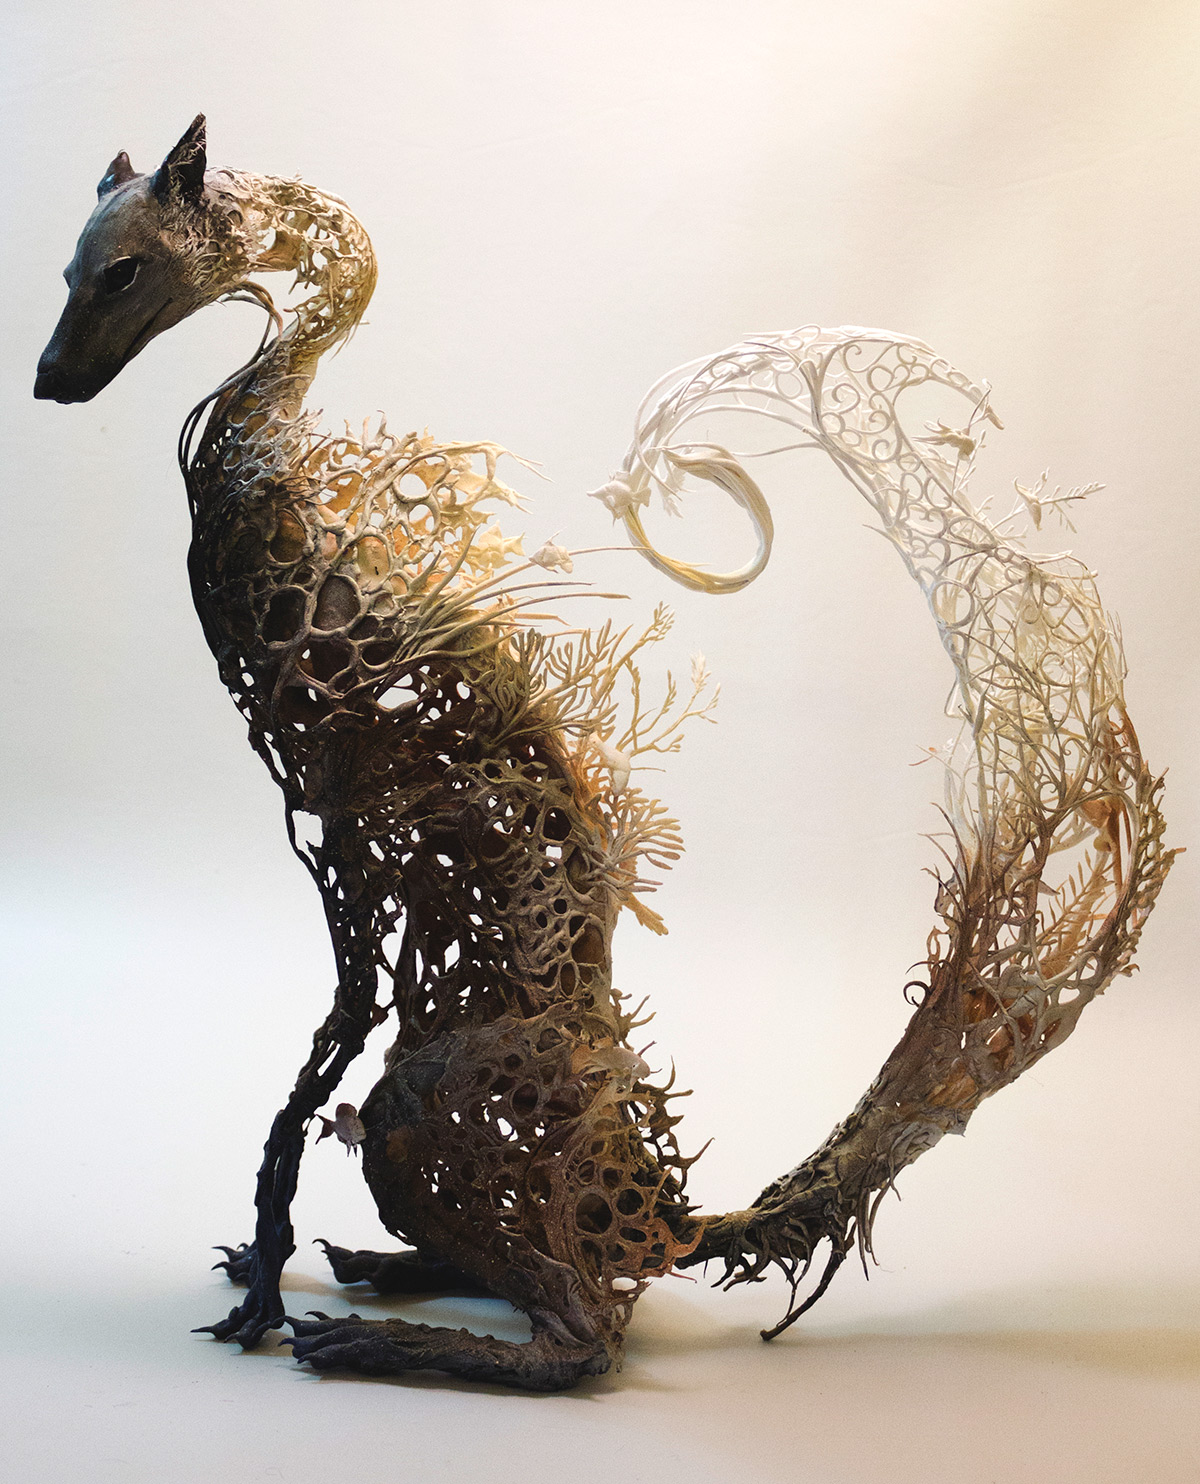 volpe-sculture-surrealiste-ellen-jewett